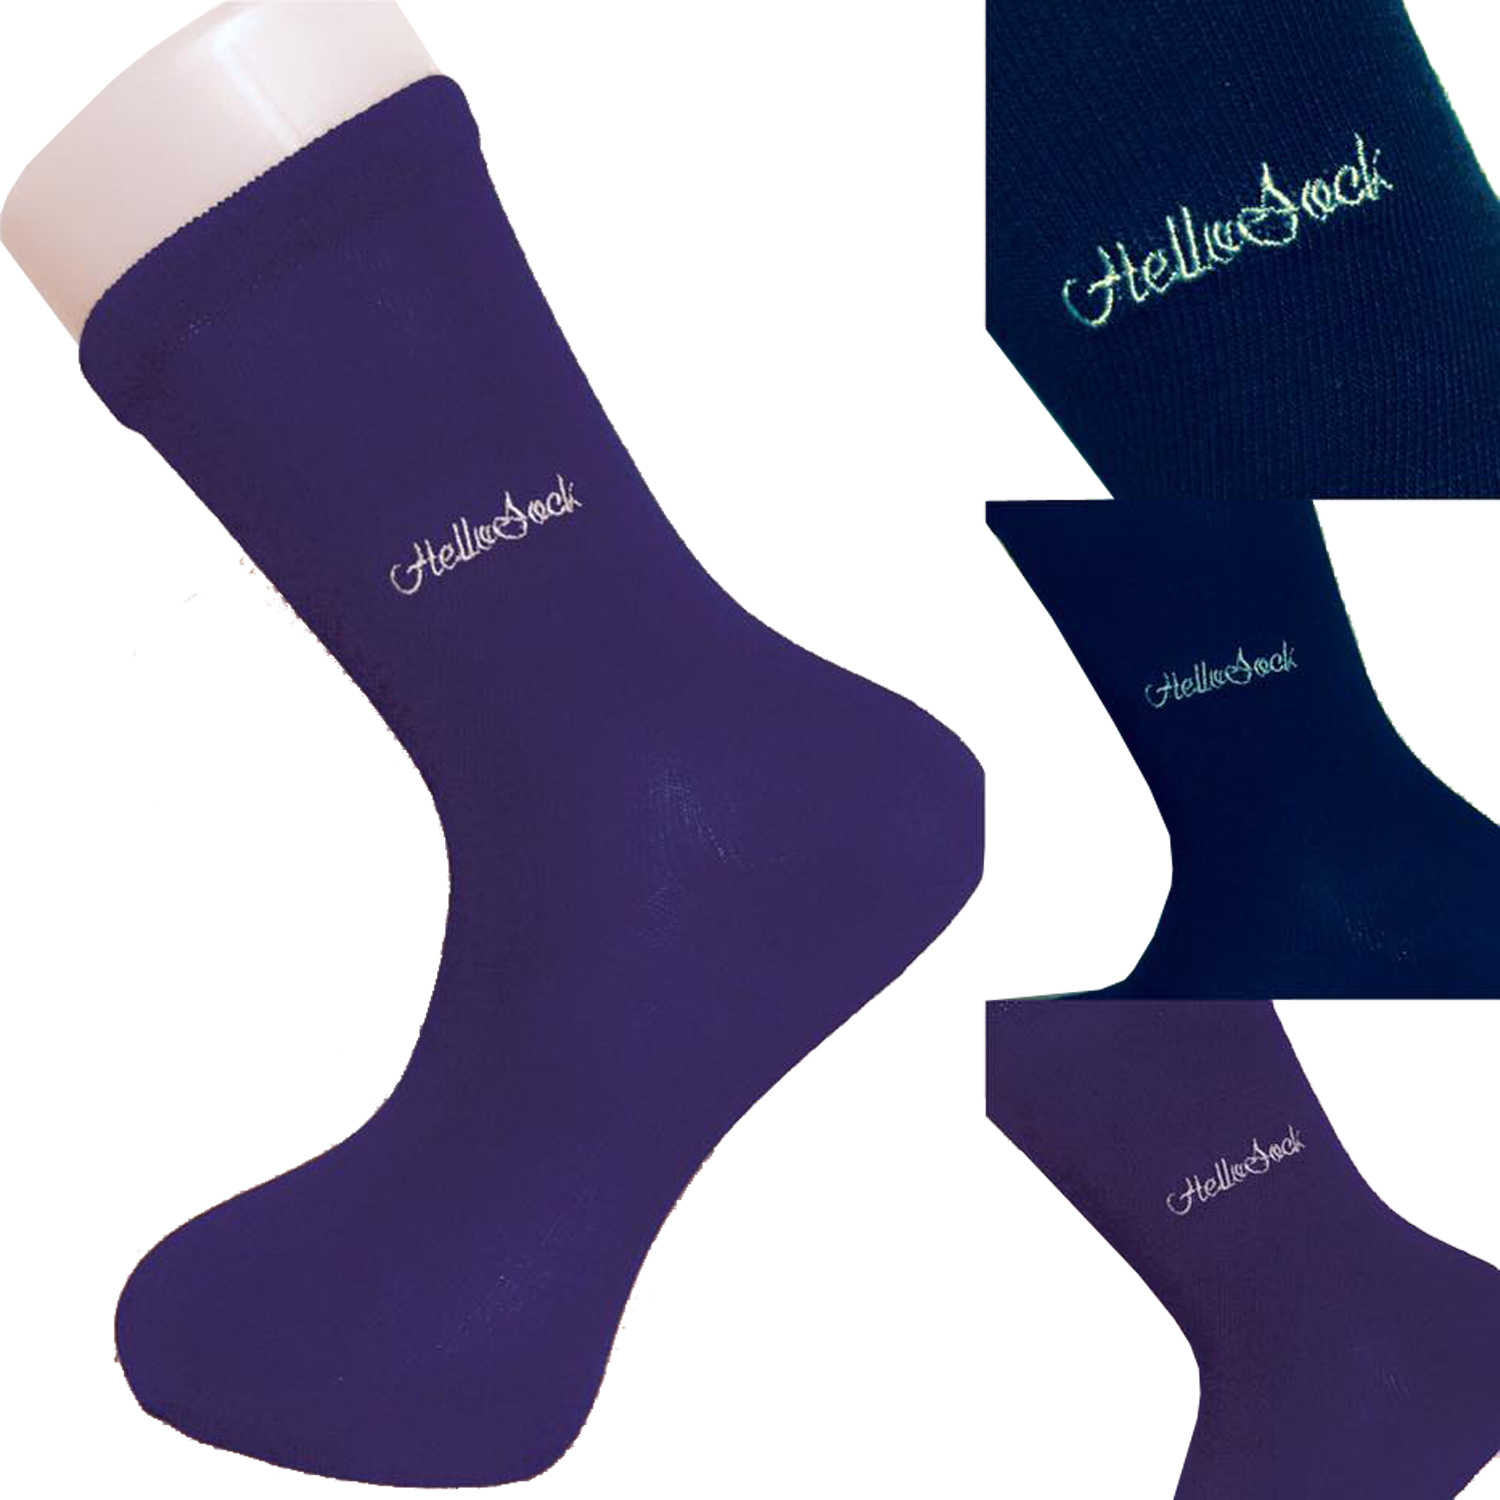 HelloSock® Men's Work/Casual Socks | Get Fresh, Comfort & Trendy (3 pairs)